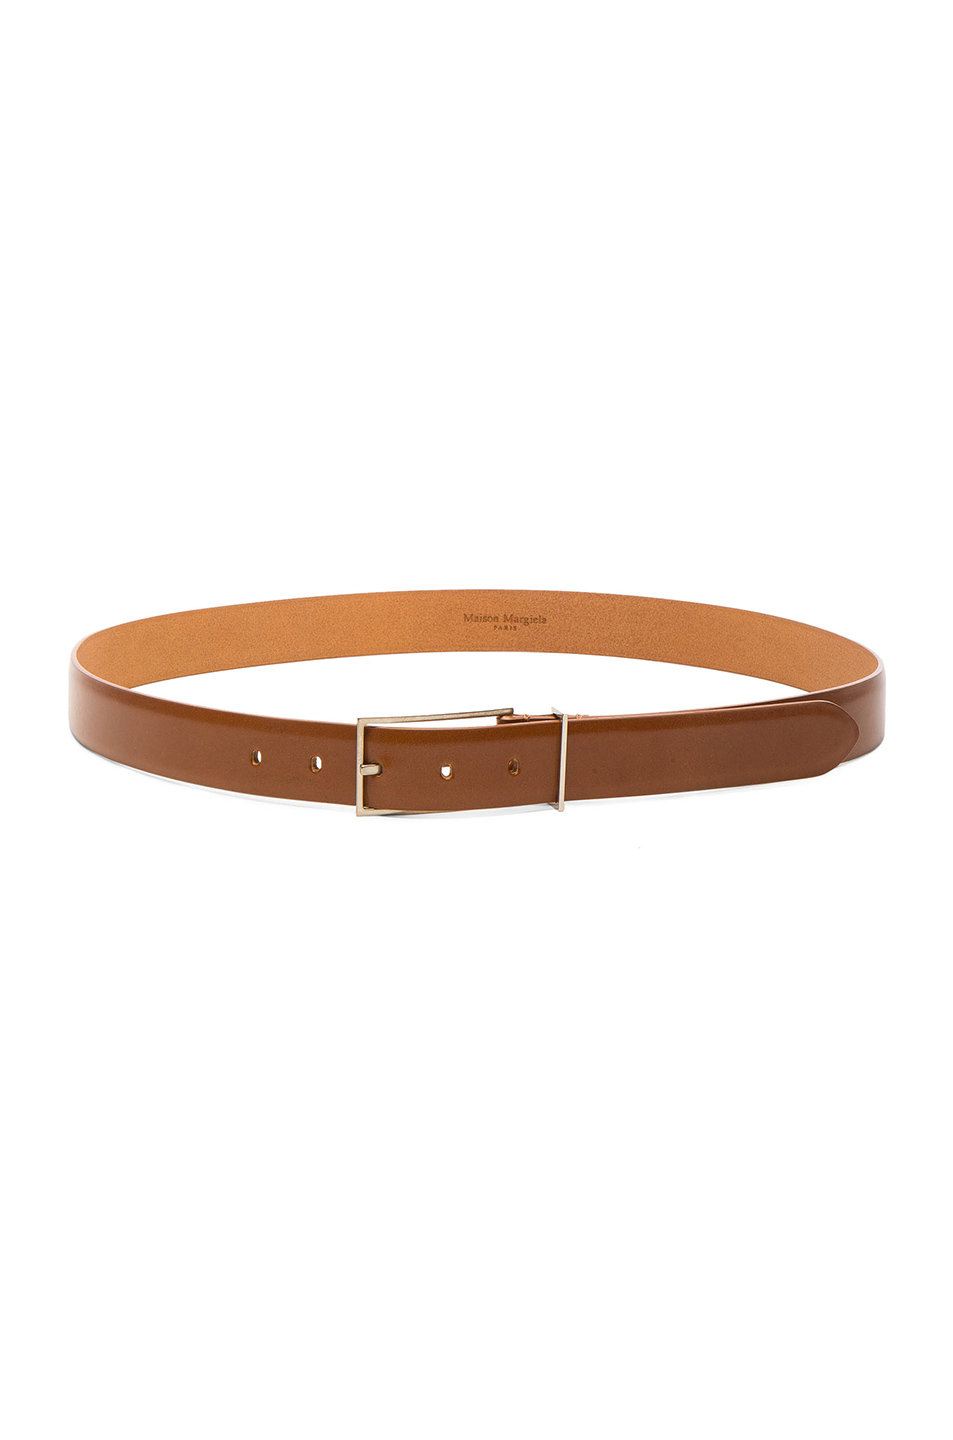 Maison Margiela Bright Calf Leather Belt in Brown